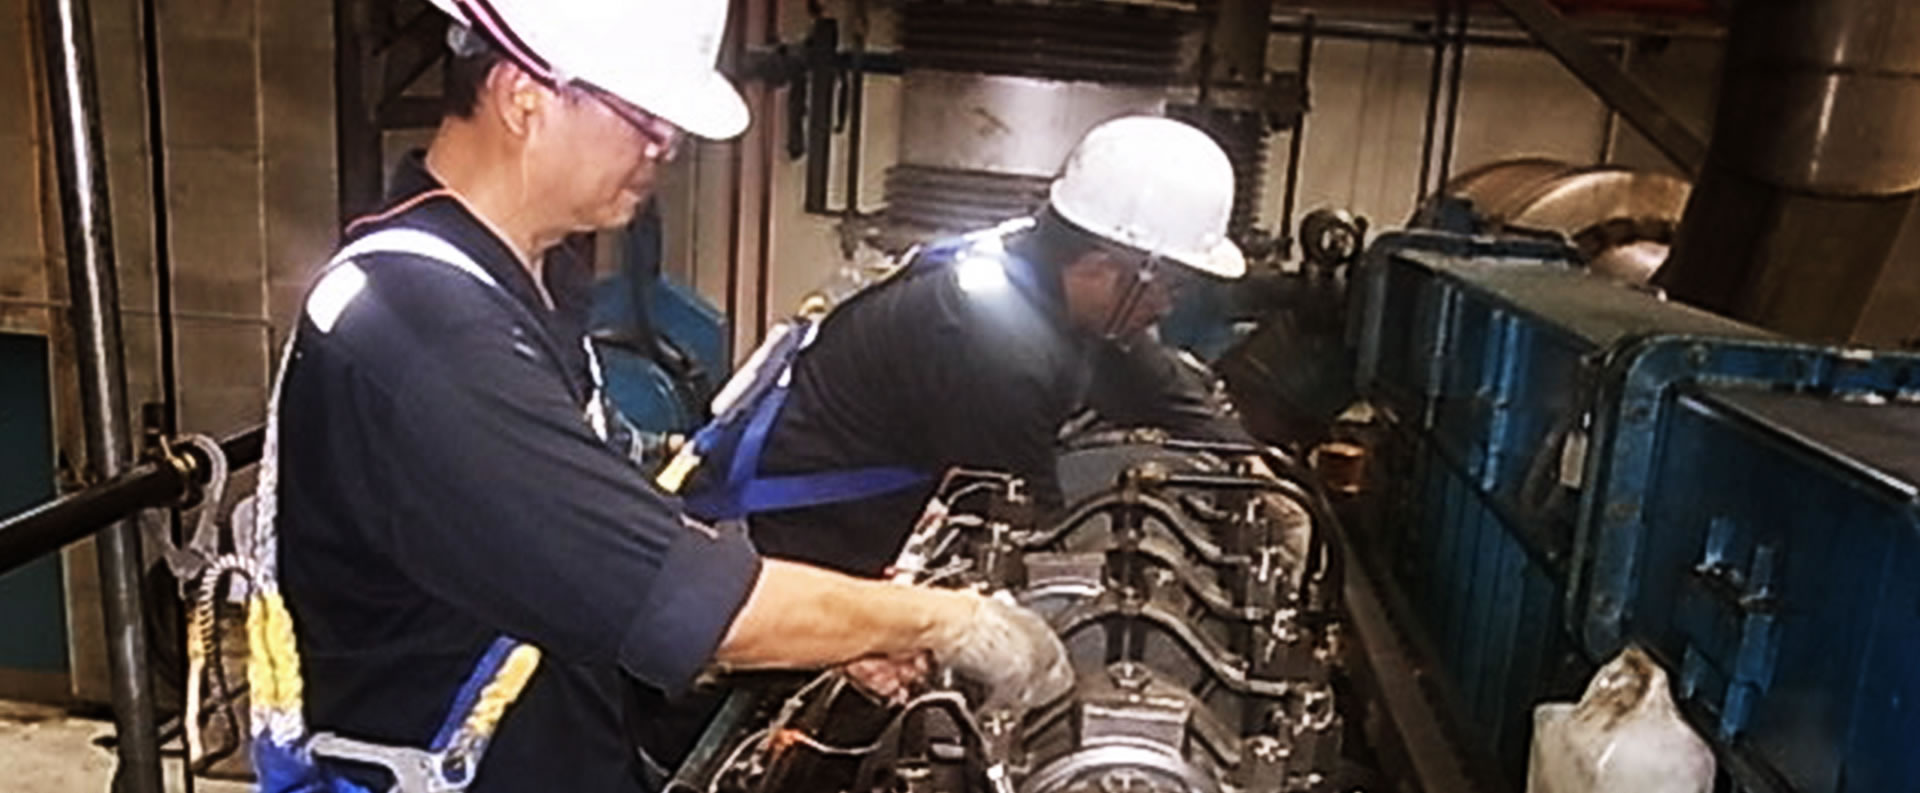 Troubleshoot/Repair and Overhaul Various Reciprocating and Rotary Equipments